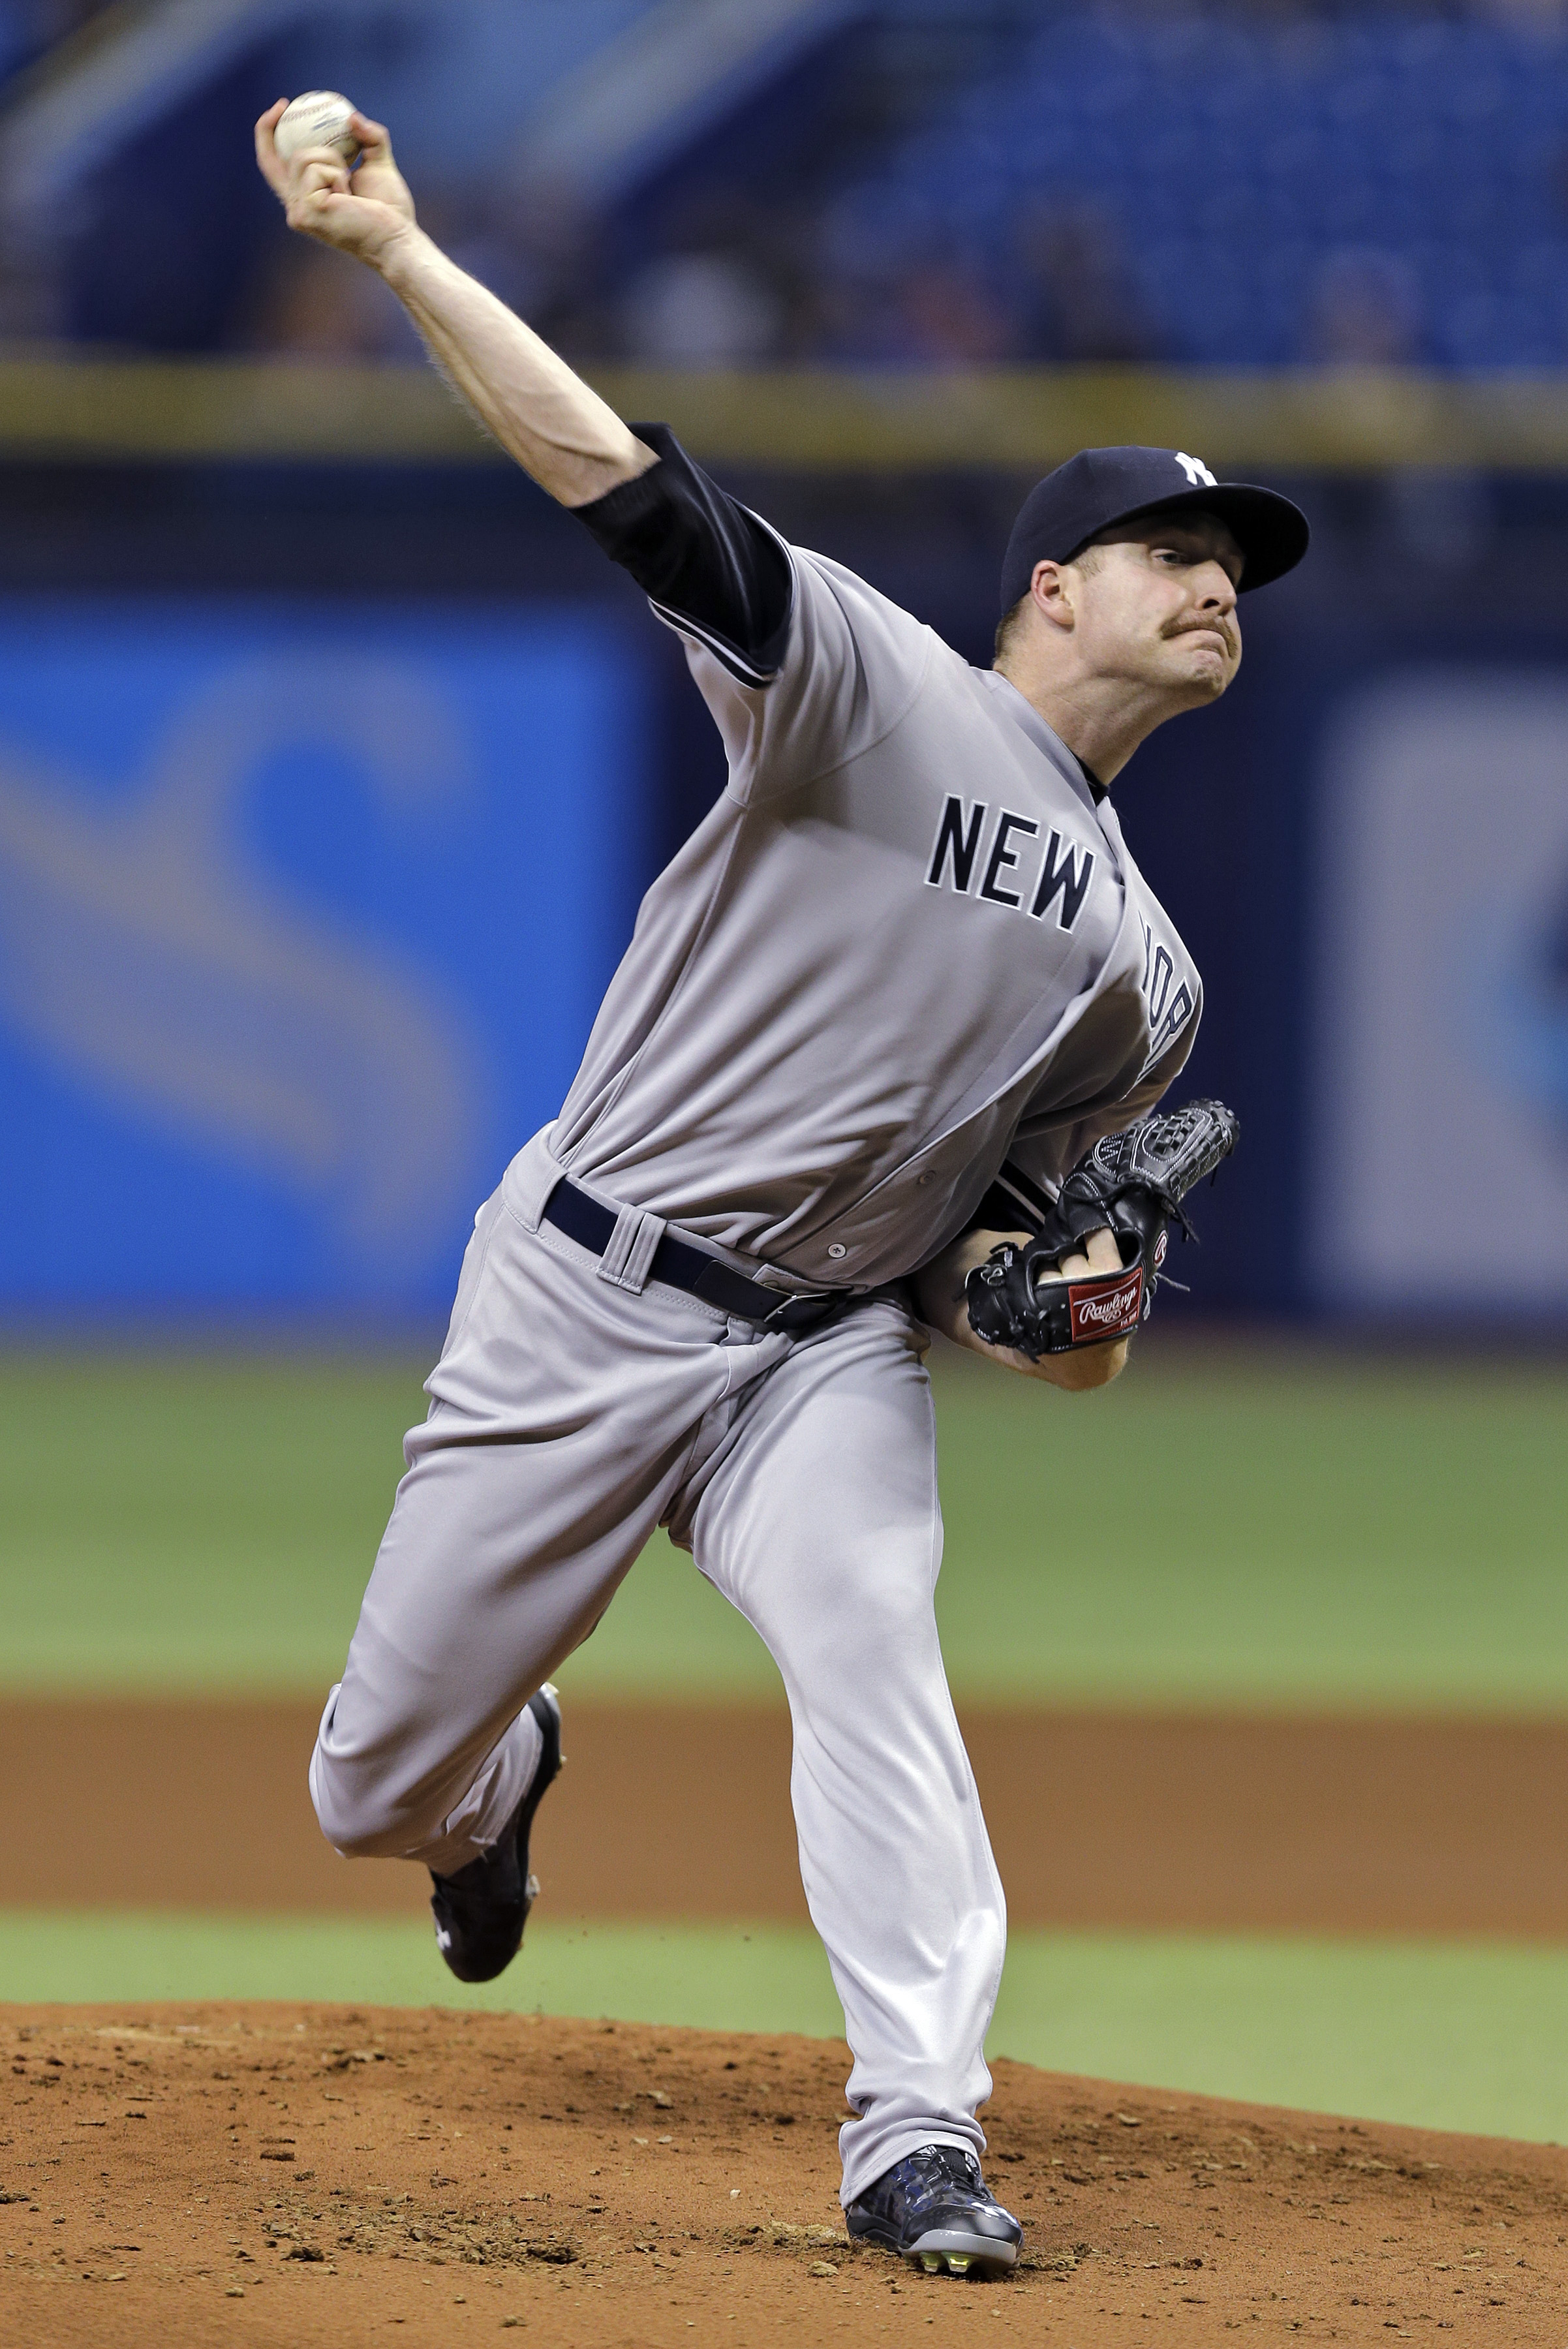 New York Yankees starting pitcher Chase Whitley delivers to the Tampa Bay Rays during the first inning of a baseball game Thursday, May 14, 2015, in St. Petersburg, Fla.  (AP Photo/Chris O'Meara)